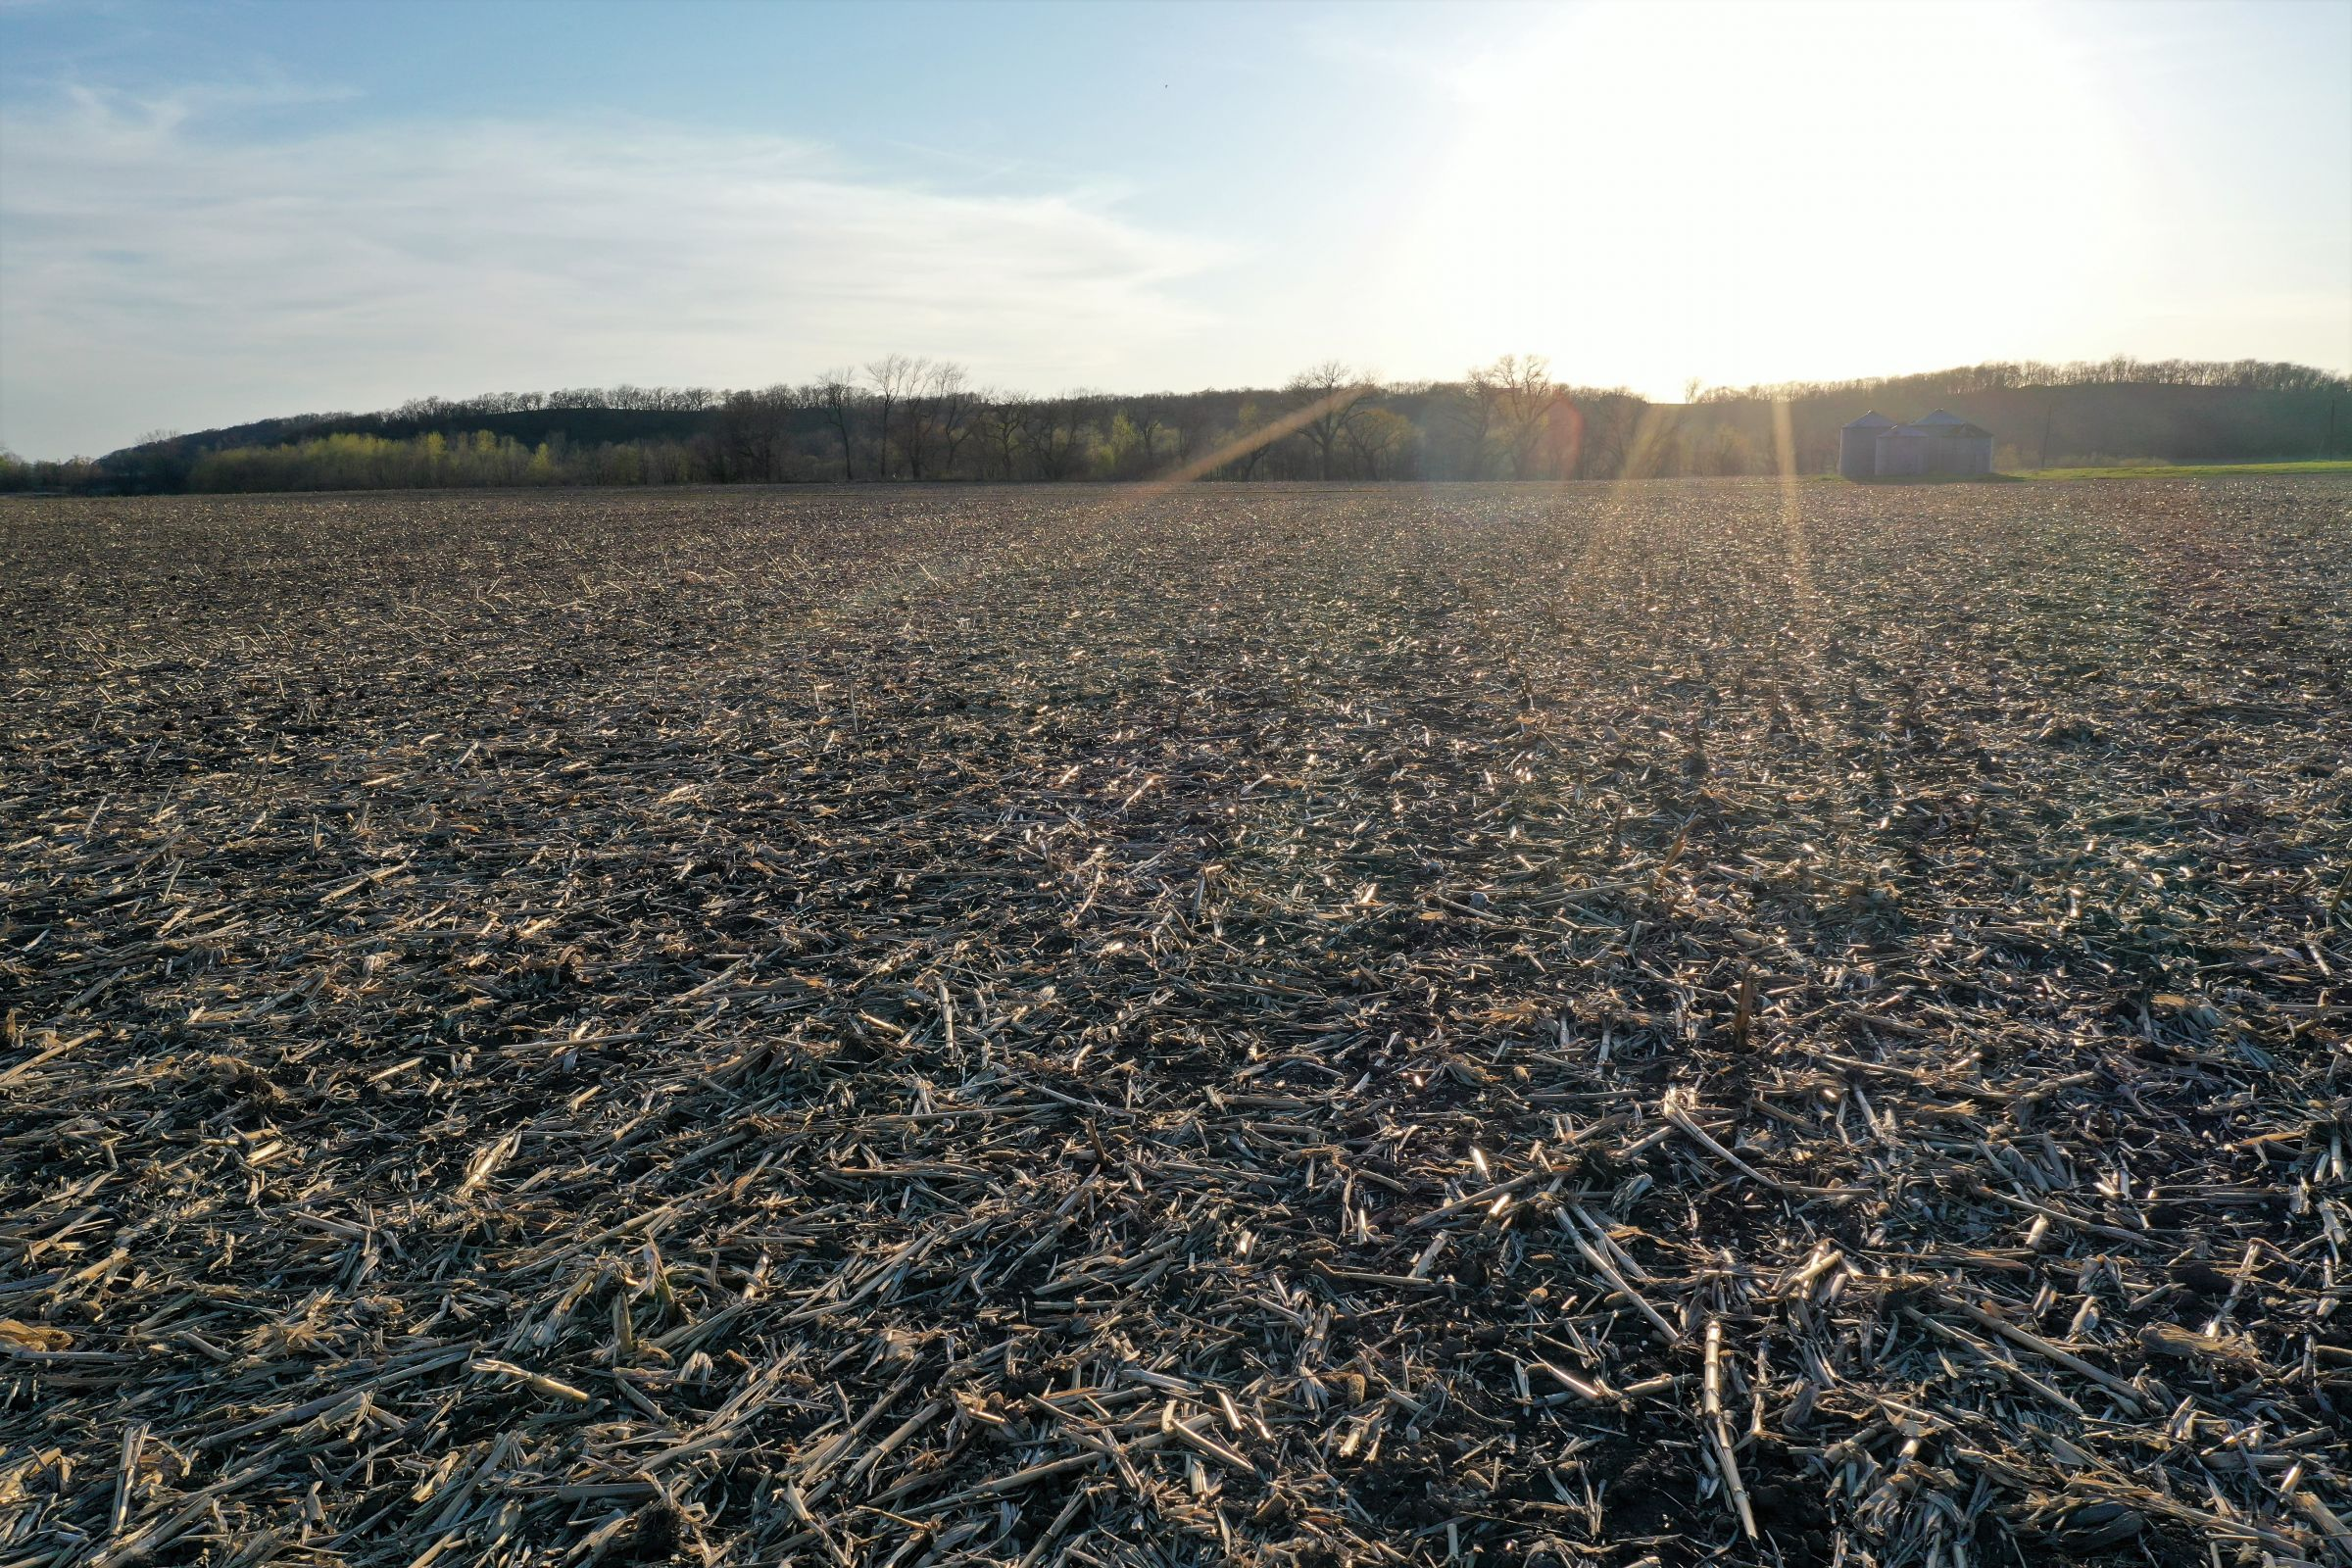 land-page-county-iowa-160-acres-listing-number-14979-5-2020-04-28-162954.jpg